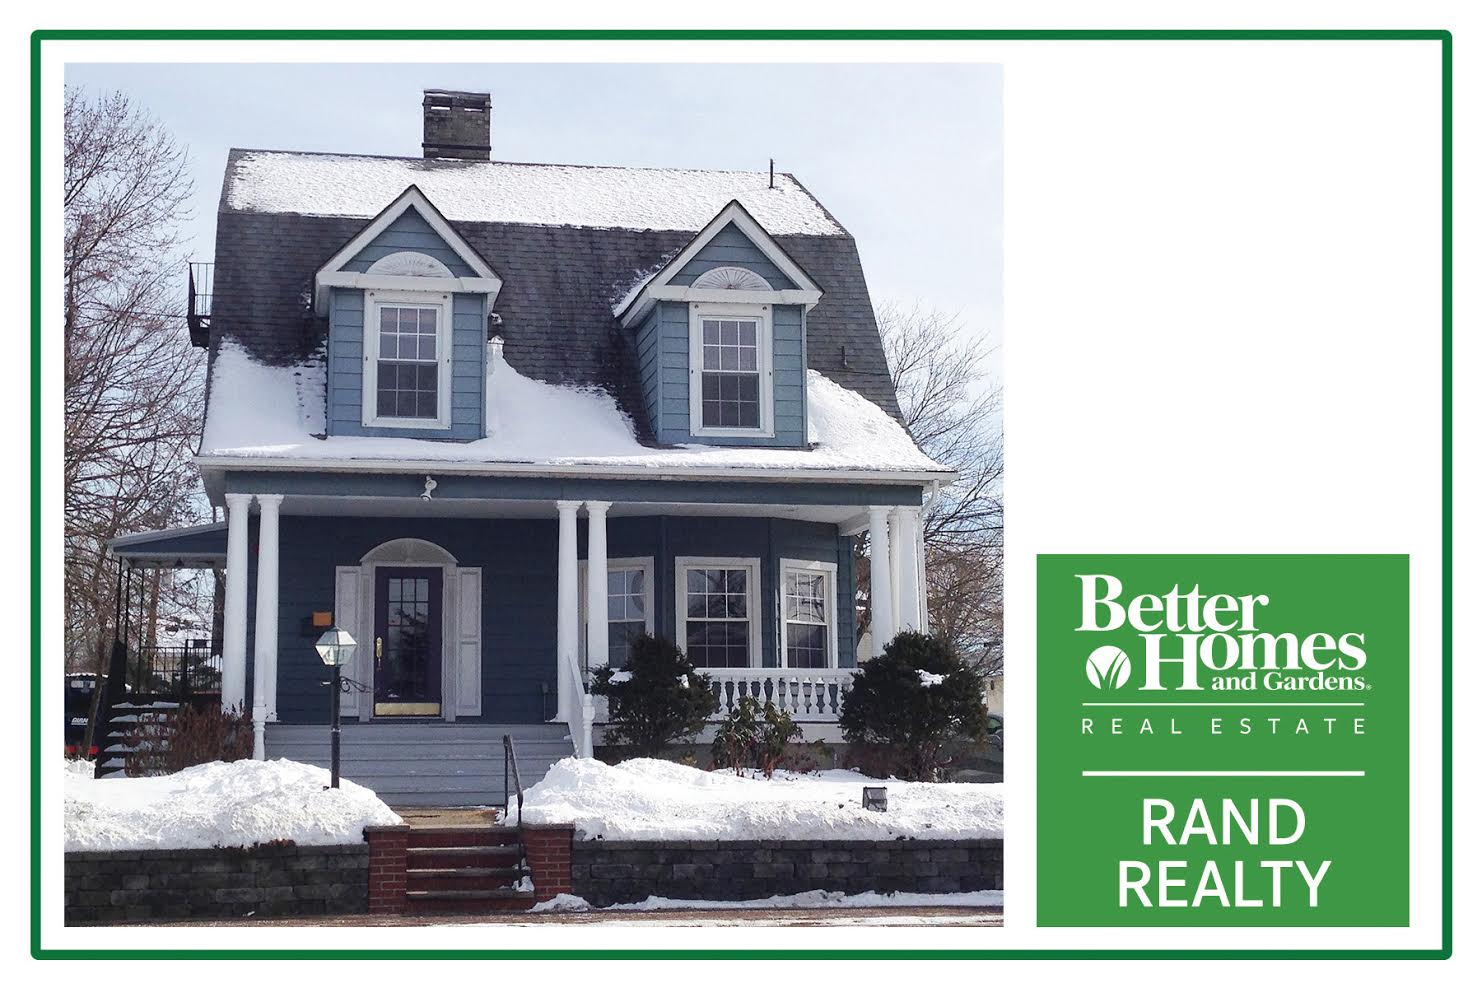 Better Homes And Gardens Realtors Bhgre Distinctive